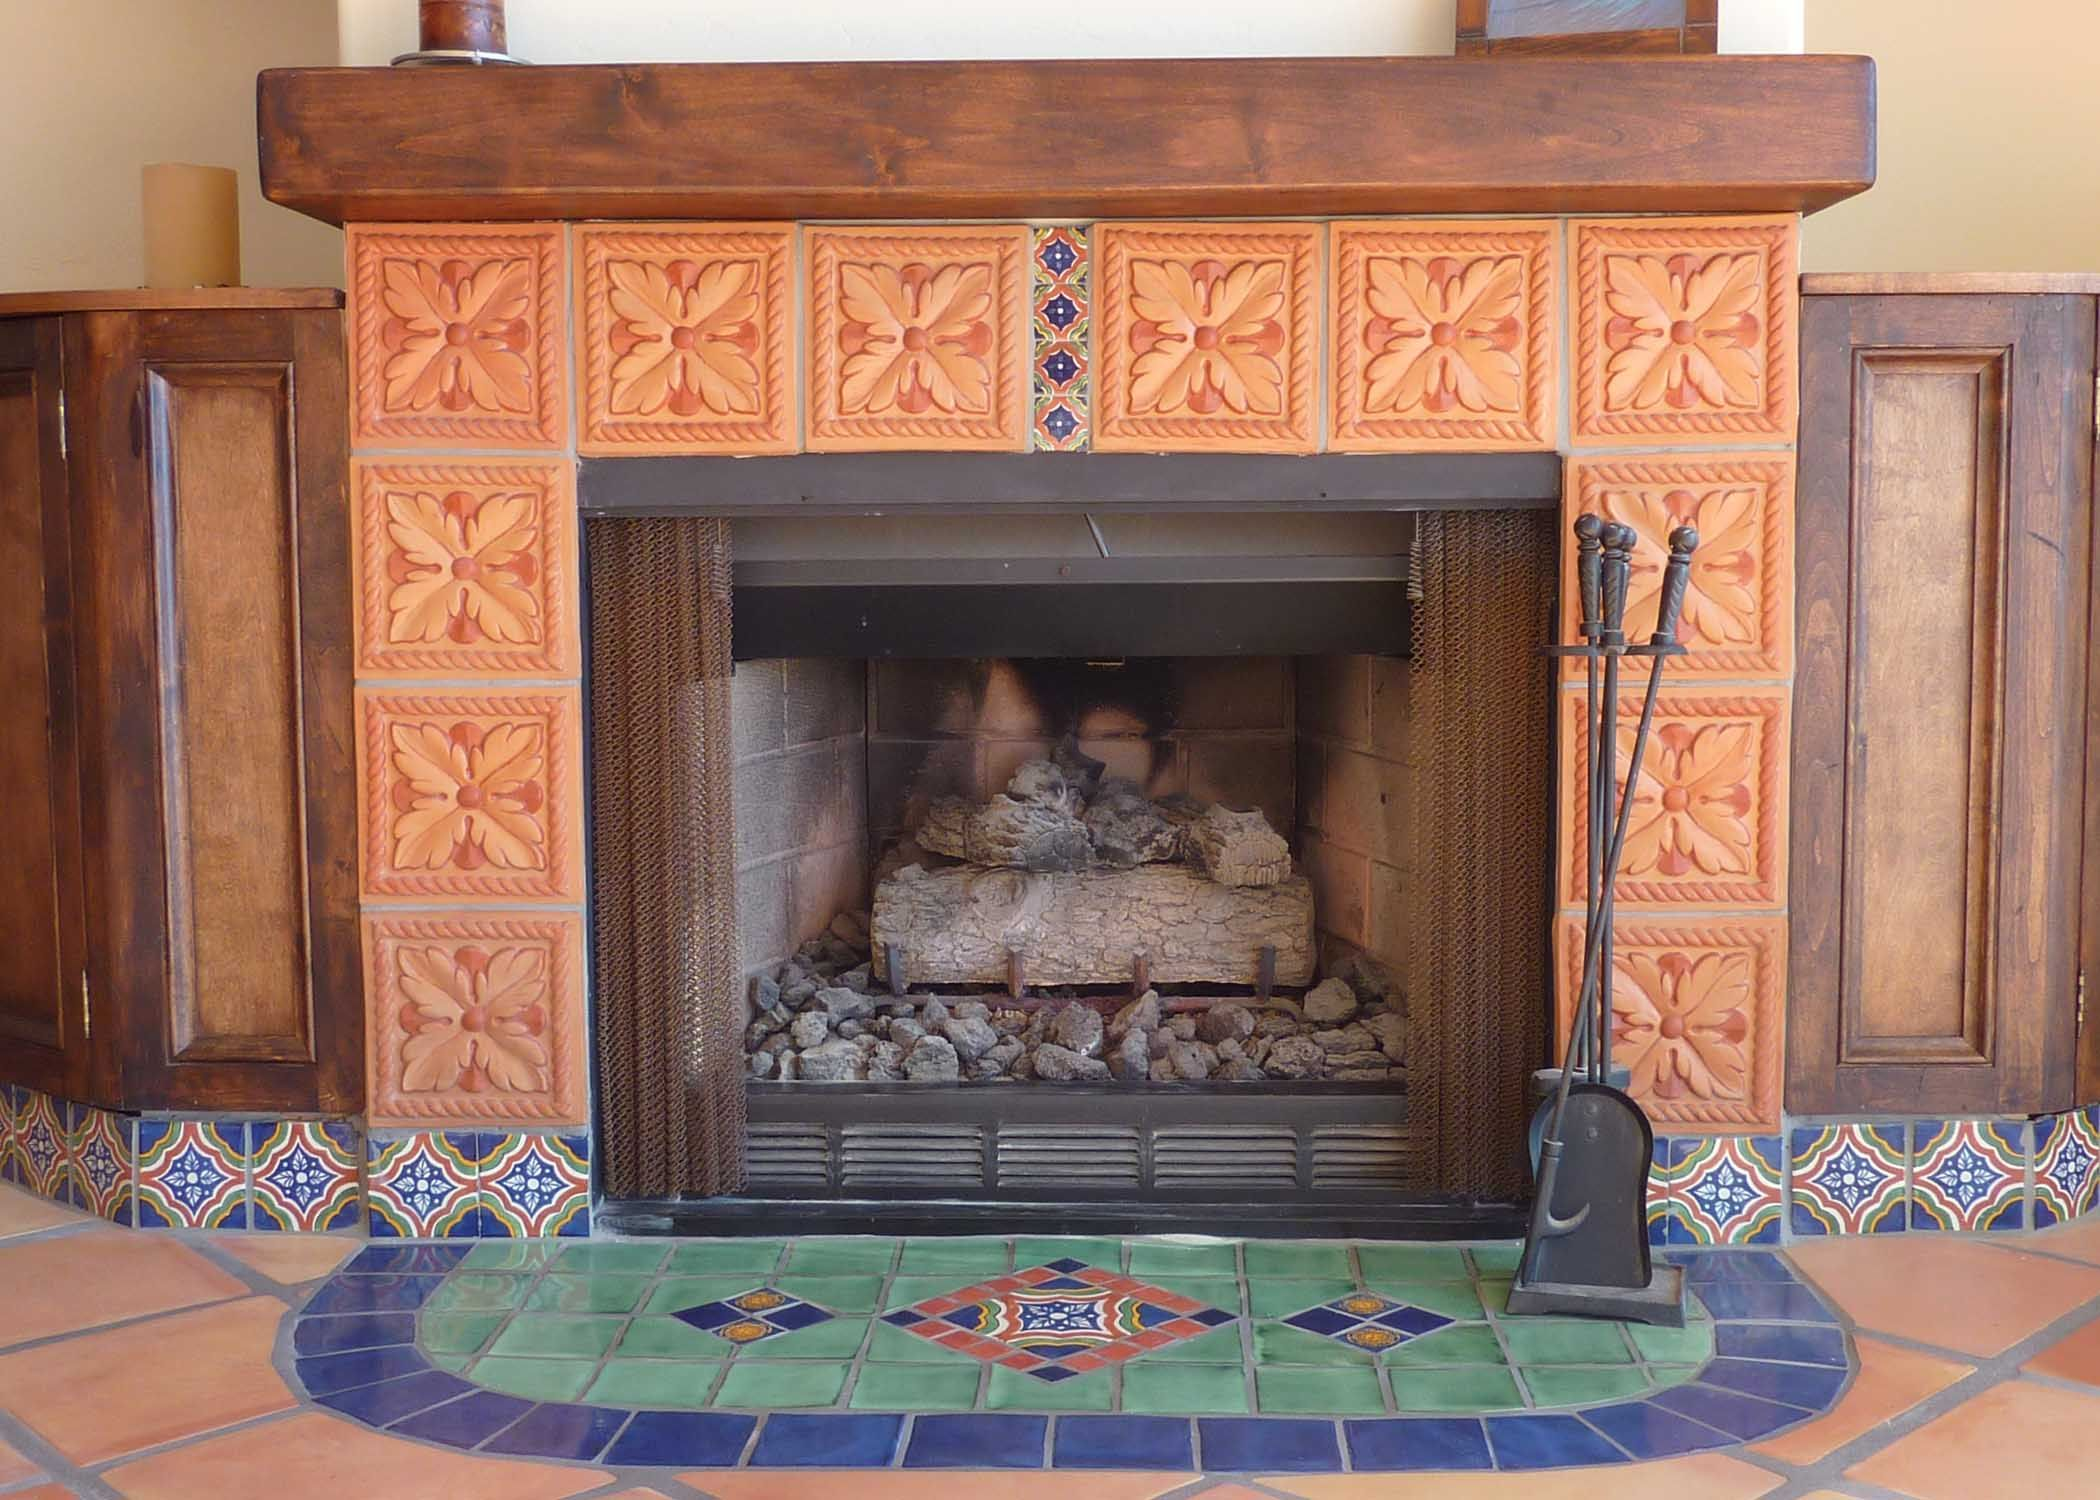 of cleaning an tile process old white diy the living tiles a paper for floor room up update marble playbook fireplace